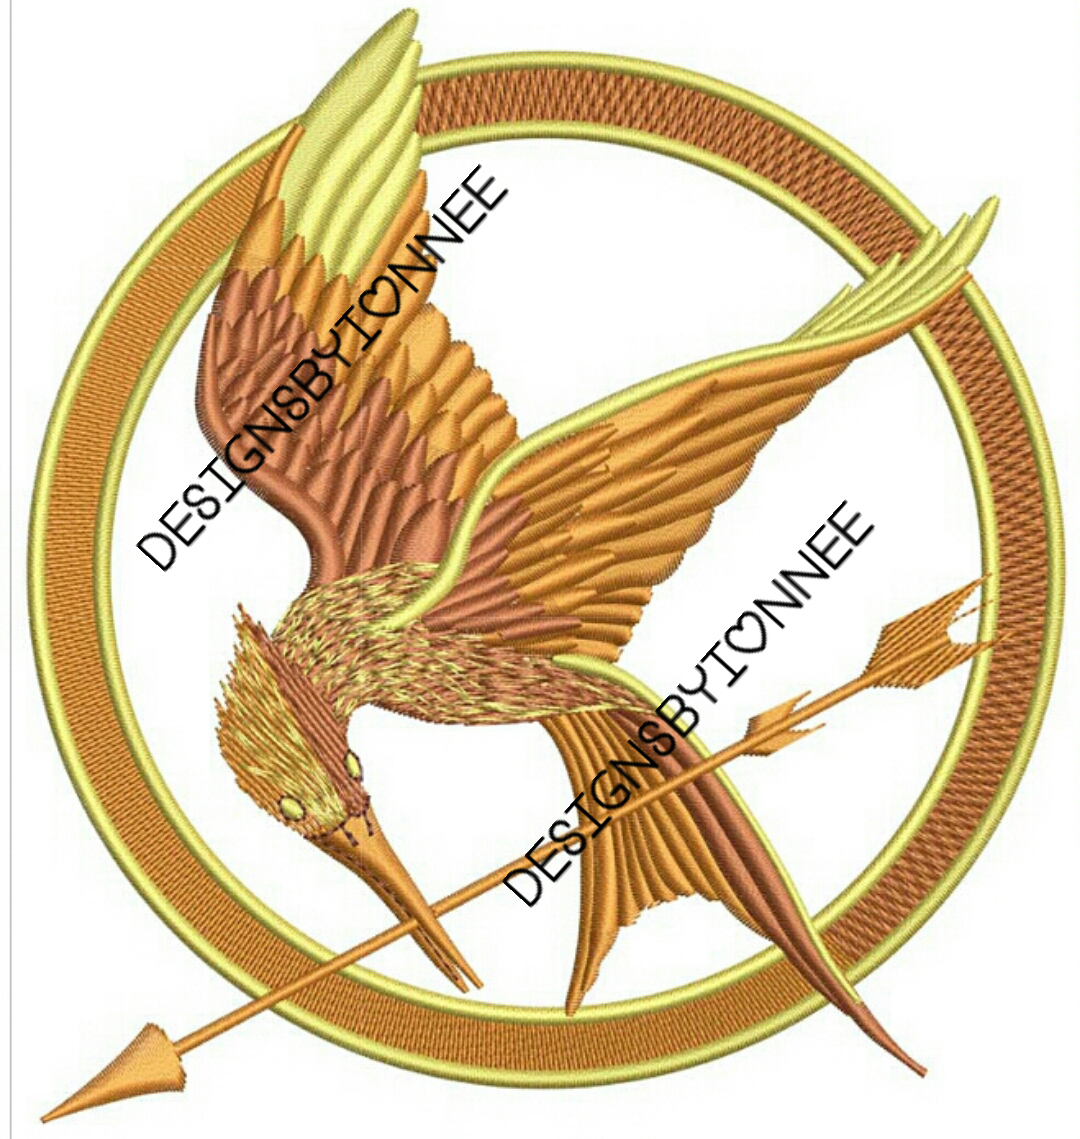 The Hunger Games Logo Embroidery Design 2 Sizes